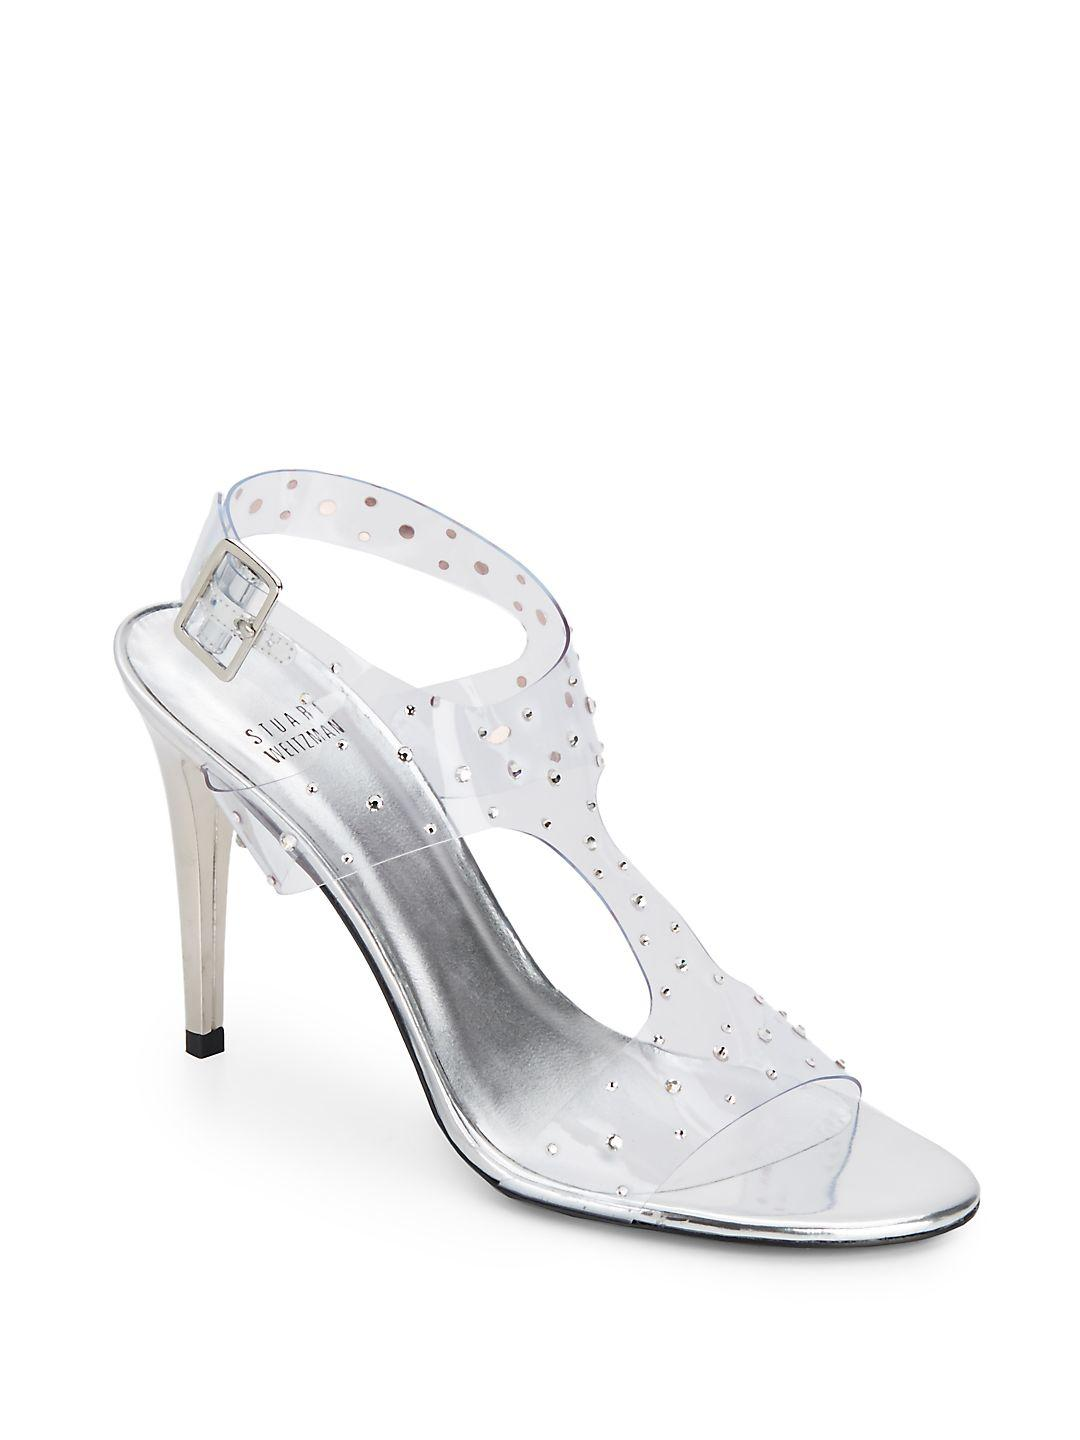 76ba38b132d Lyst - Stuart Weitzman Looking Good Rhinestone-embellished Clear ...